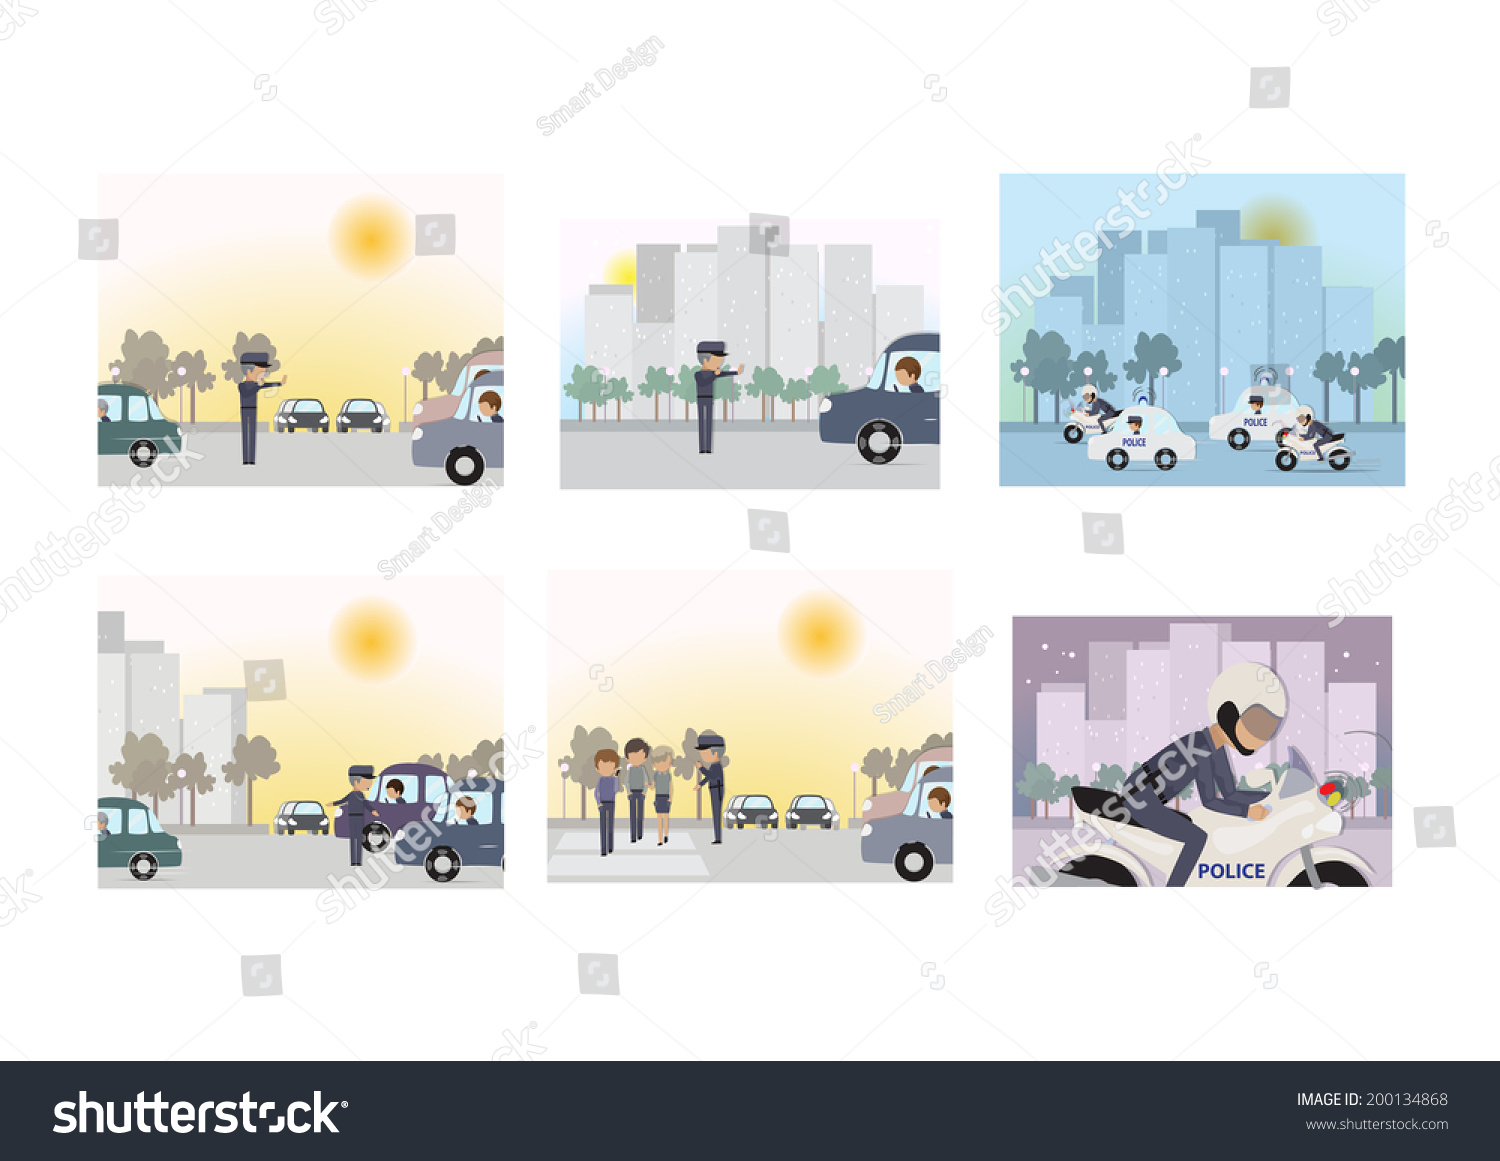 Police - Public Safety and Security… Stock Photo 200134868